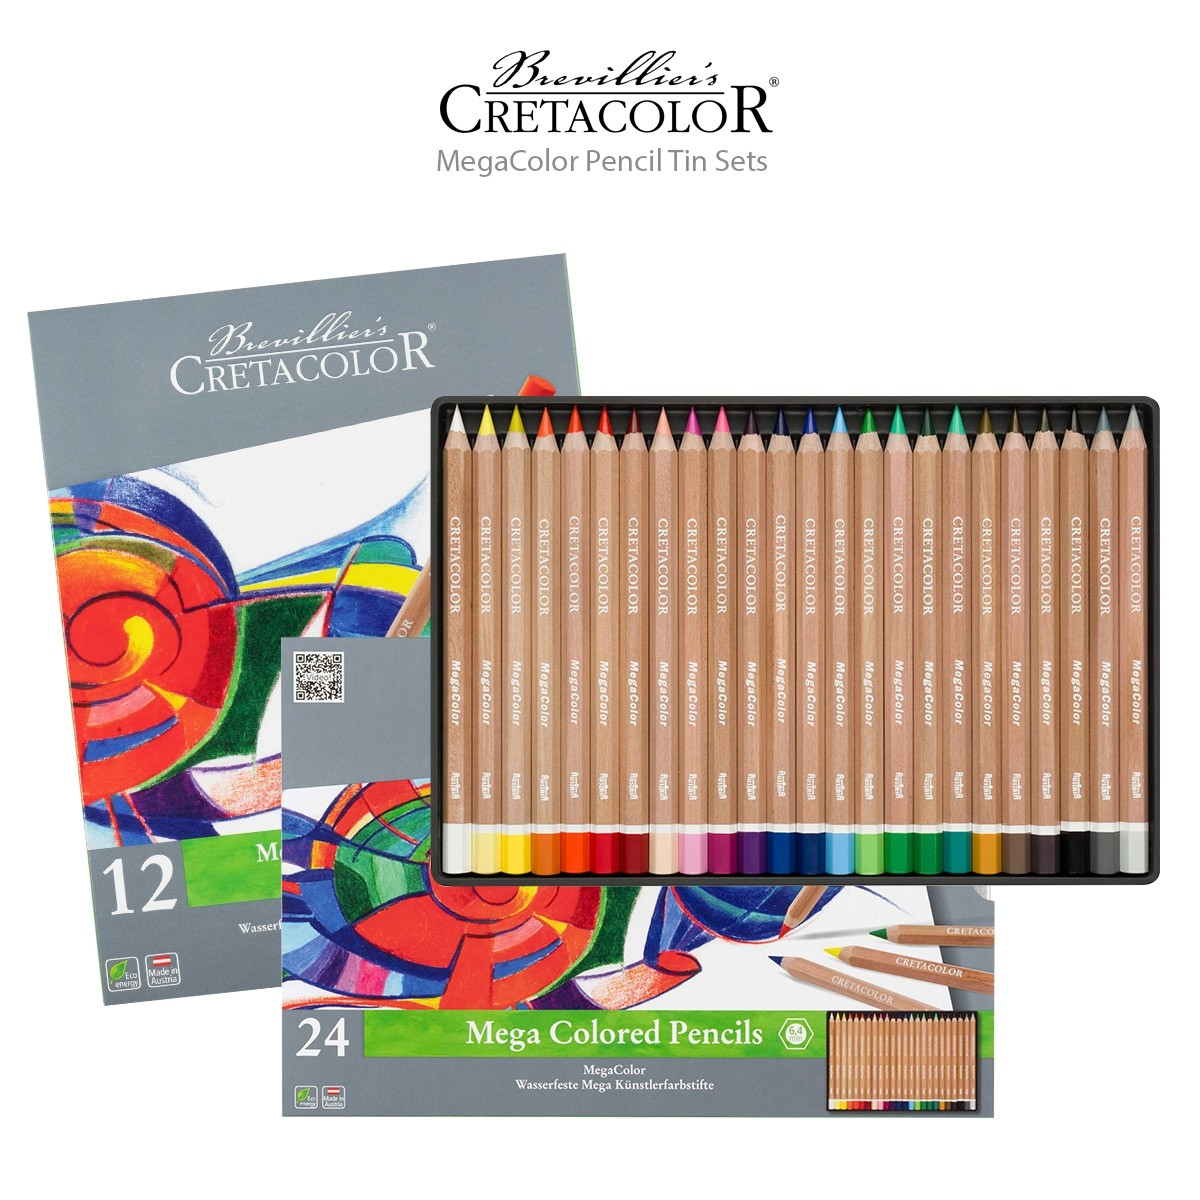 Cretacolor MegaColor Pencil Tin Sets